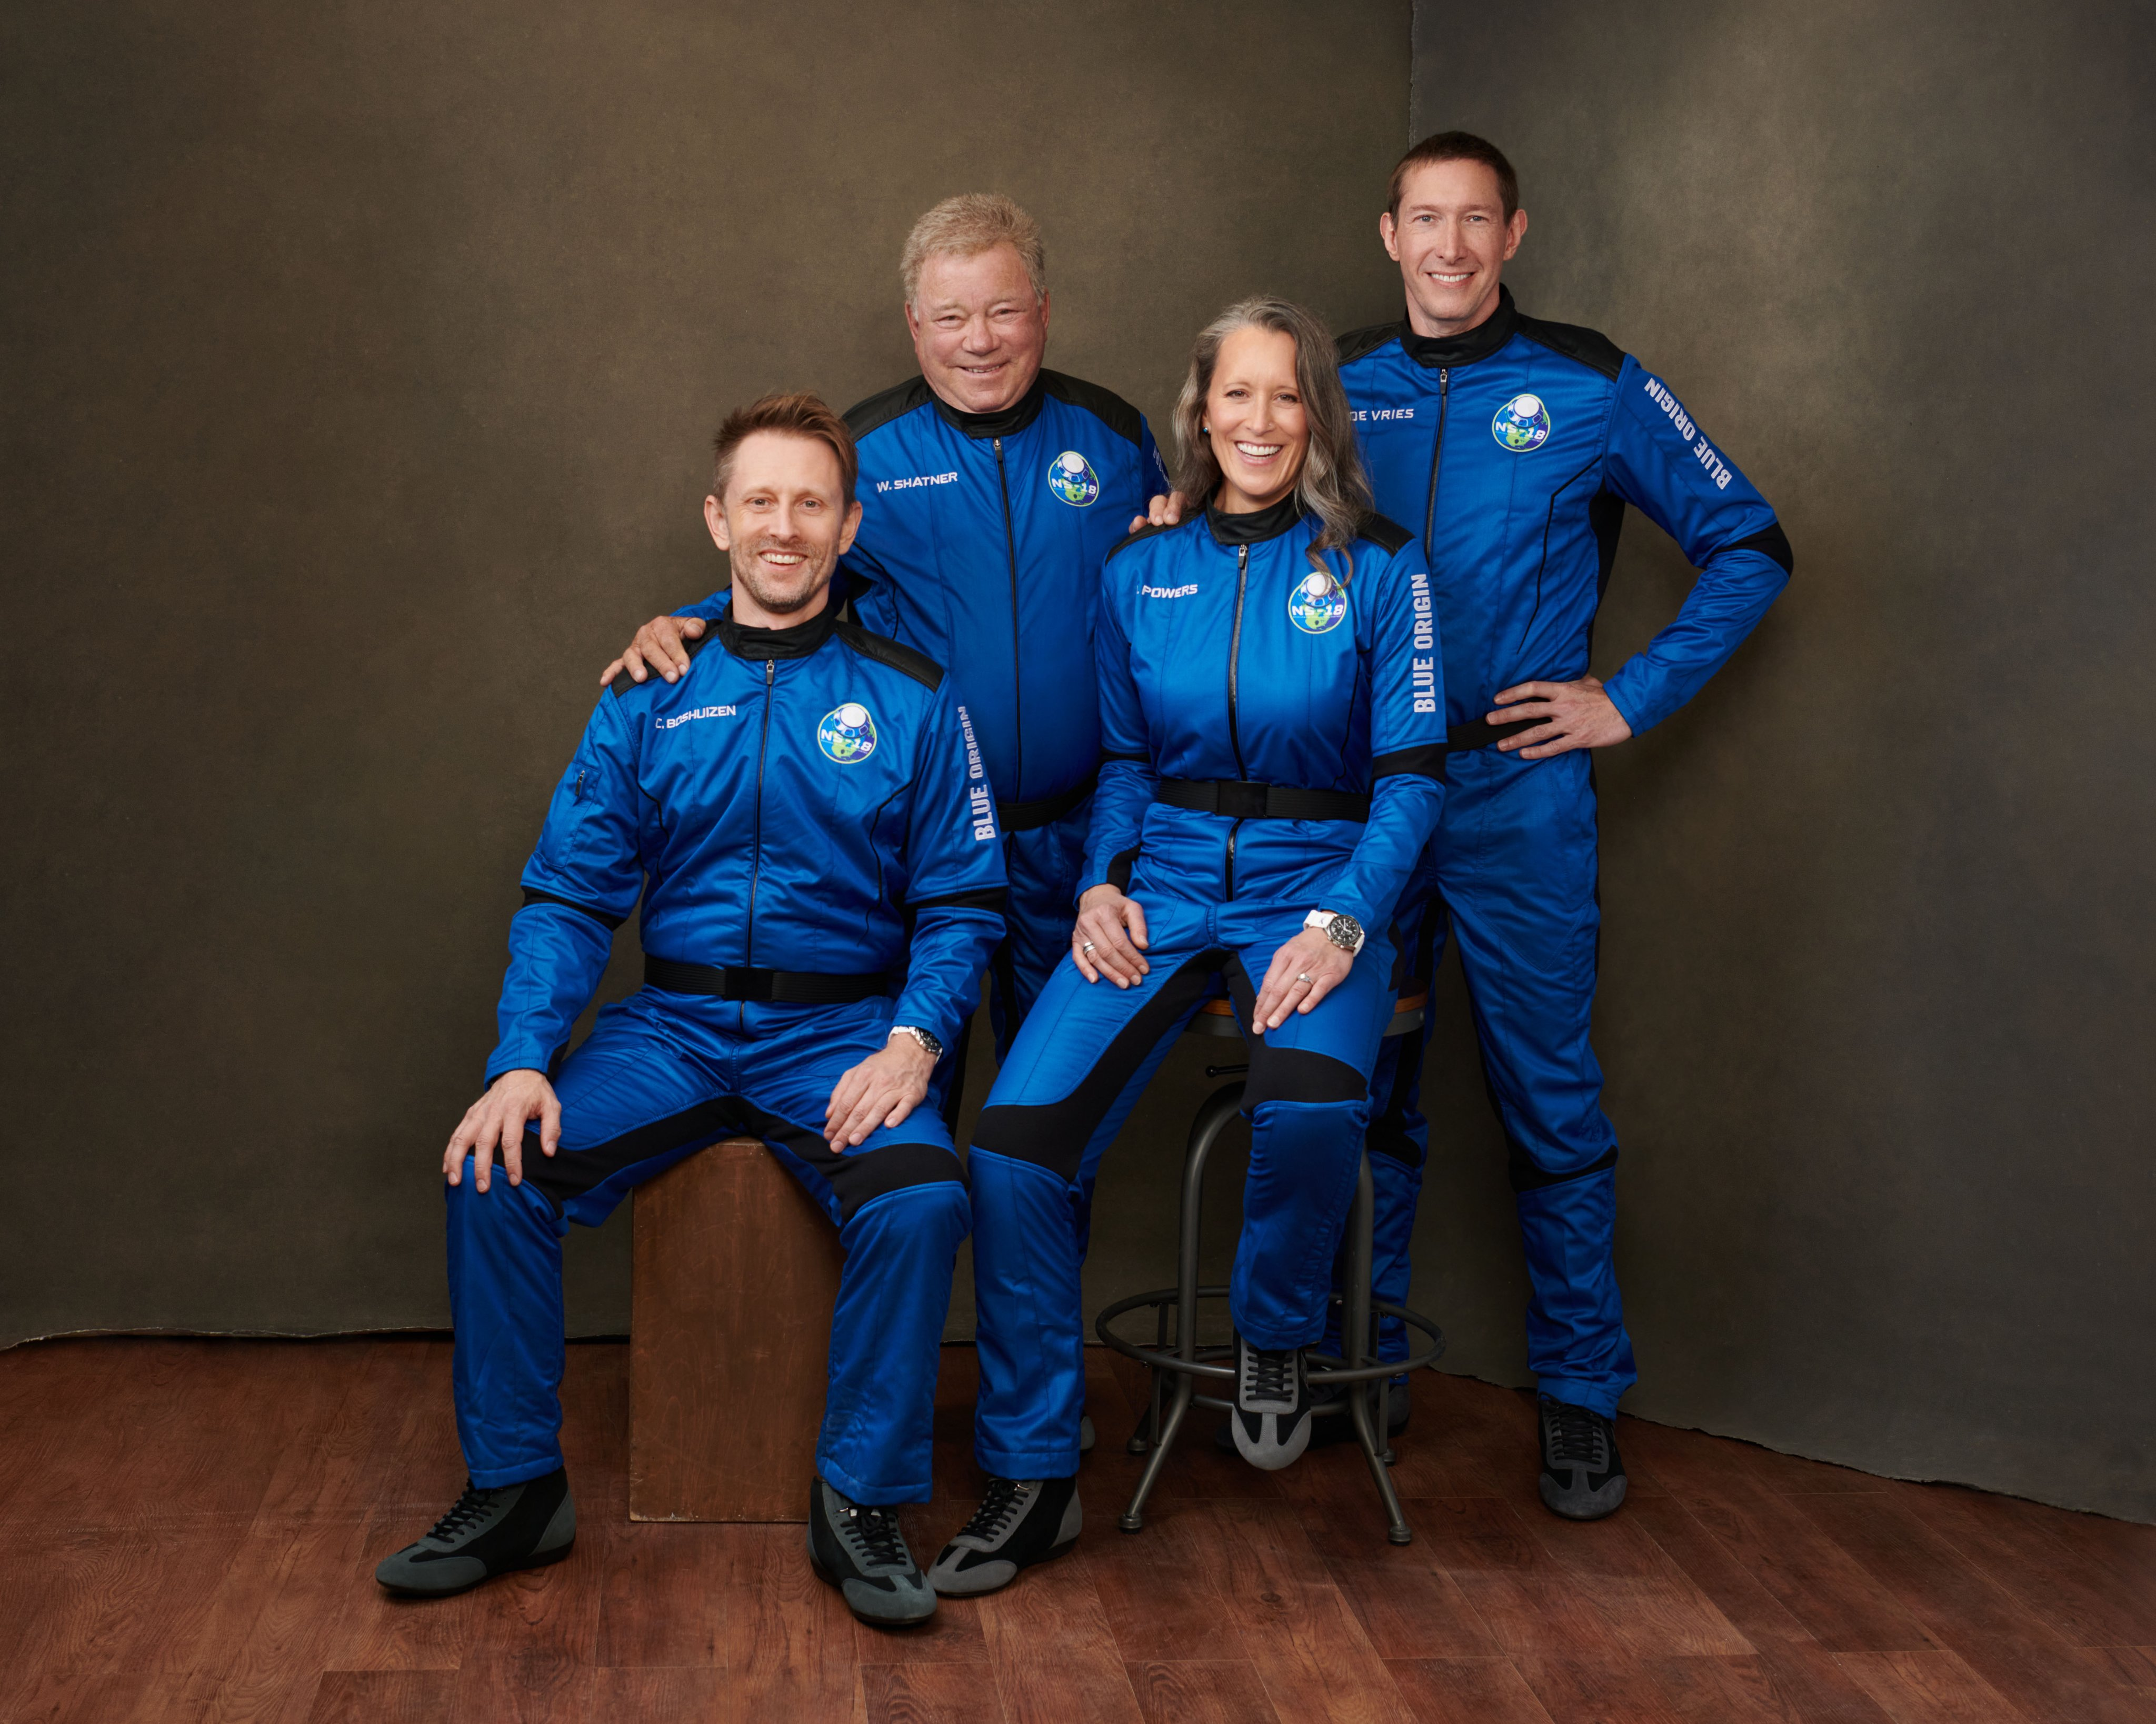 William Shatner rockets to space with Blue Origin: How to watch live